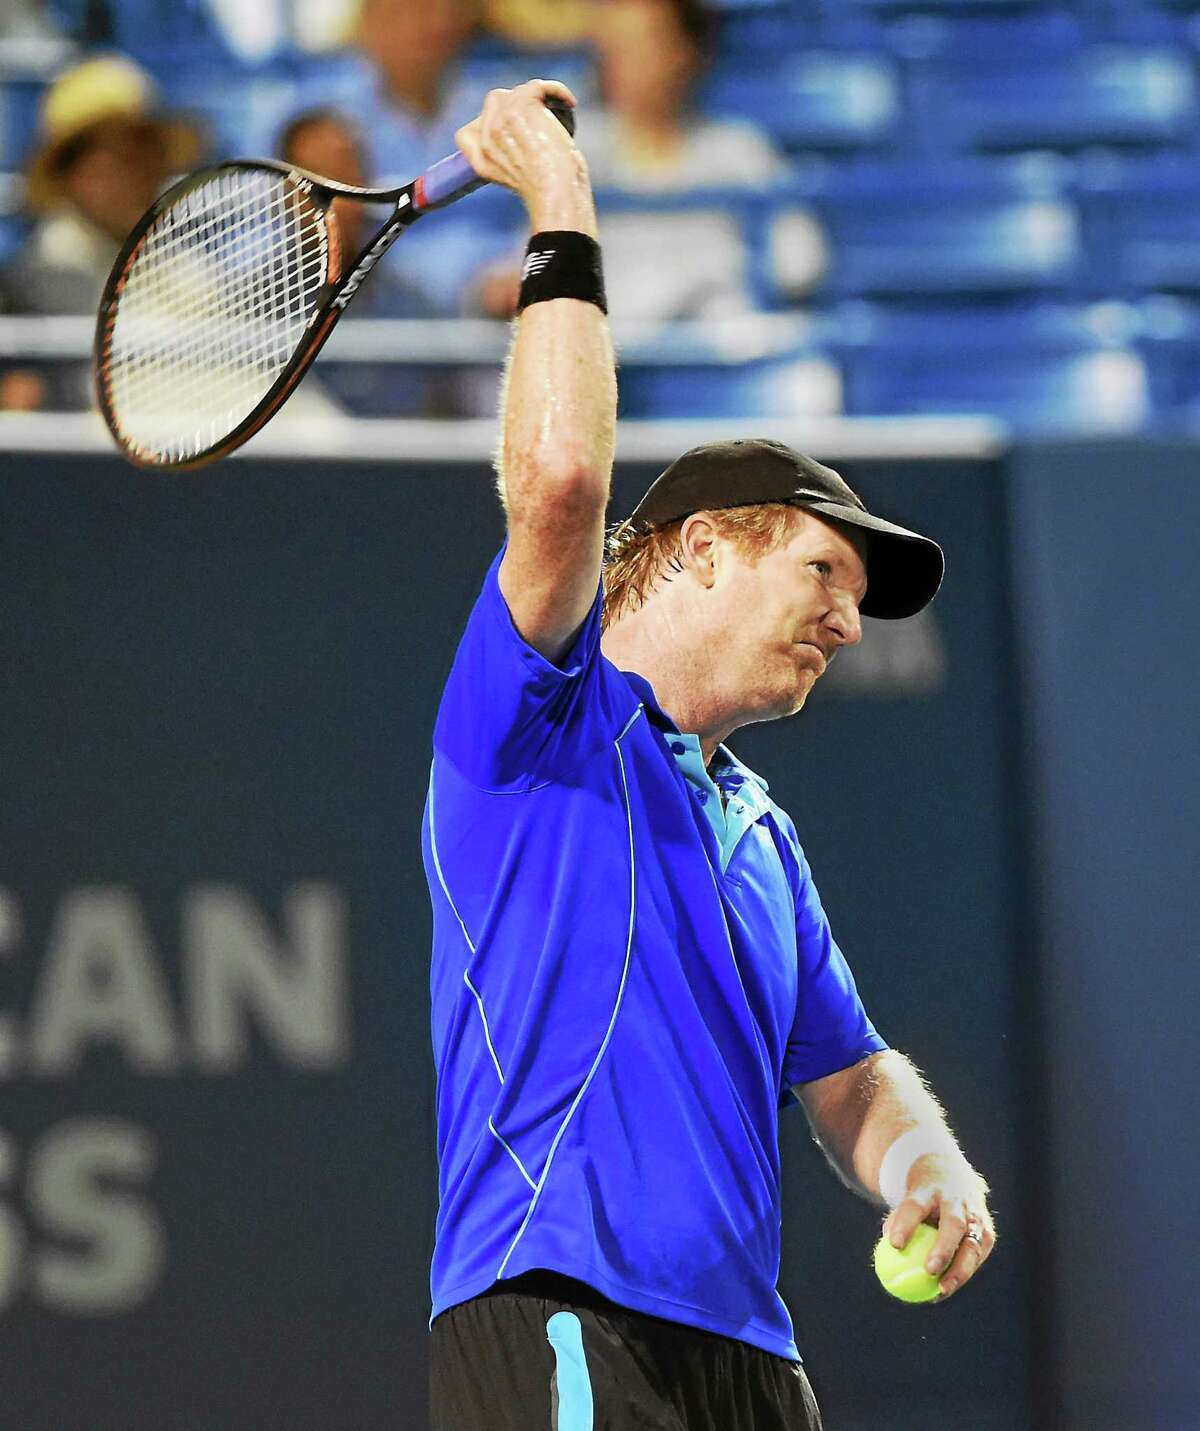 Jim Courier pretends to be angry as he challenges a call by a line judge during his exhibition match with James Blake on Wednesday night at the Connecticut Tennis Center.